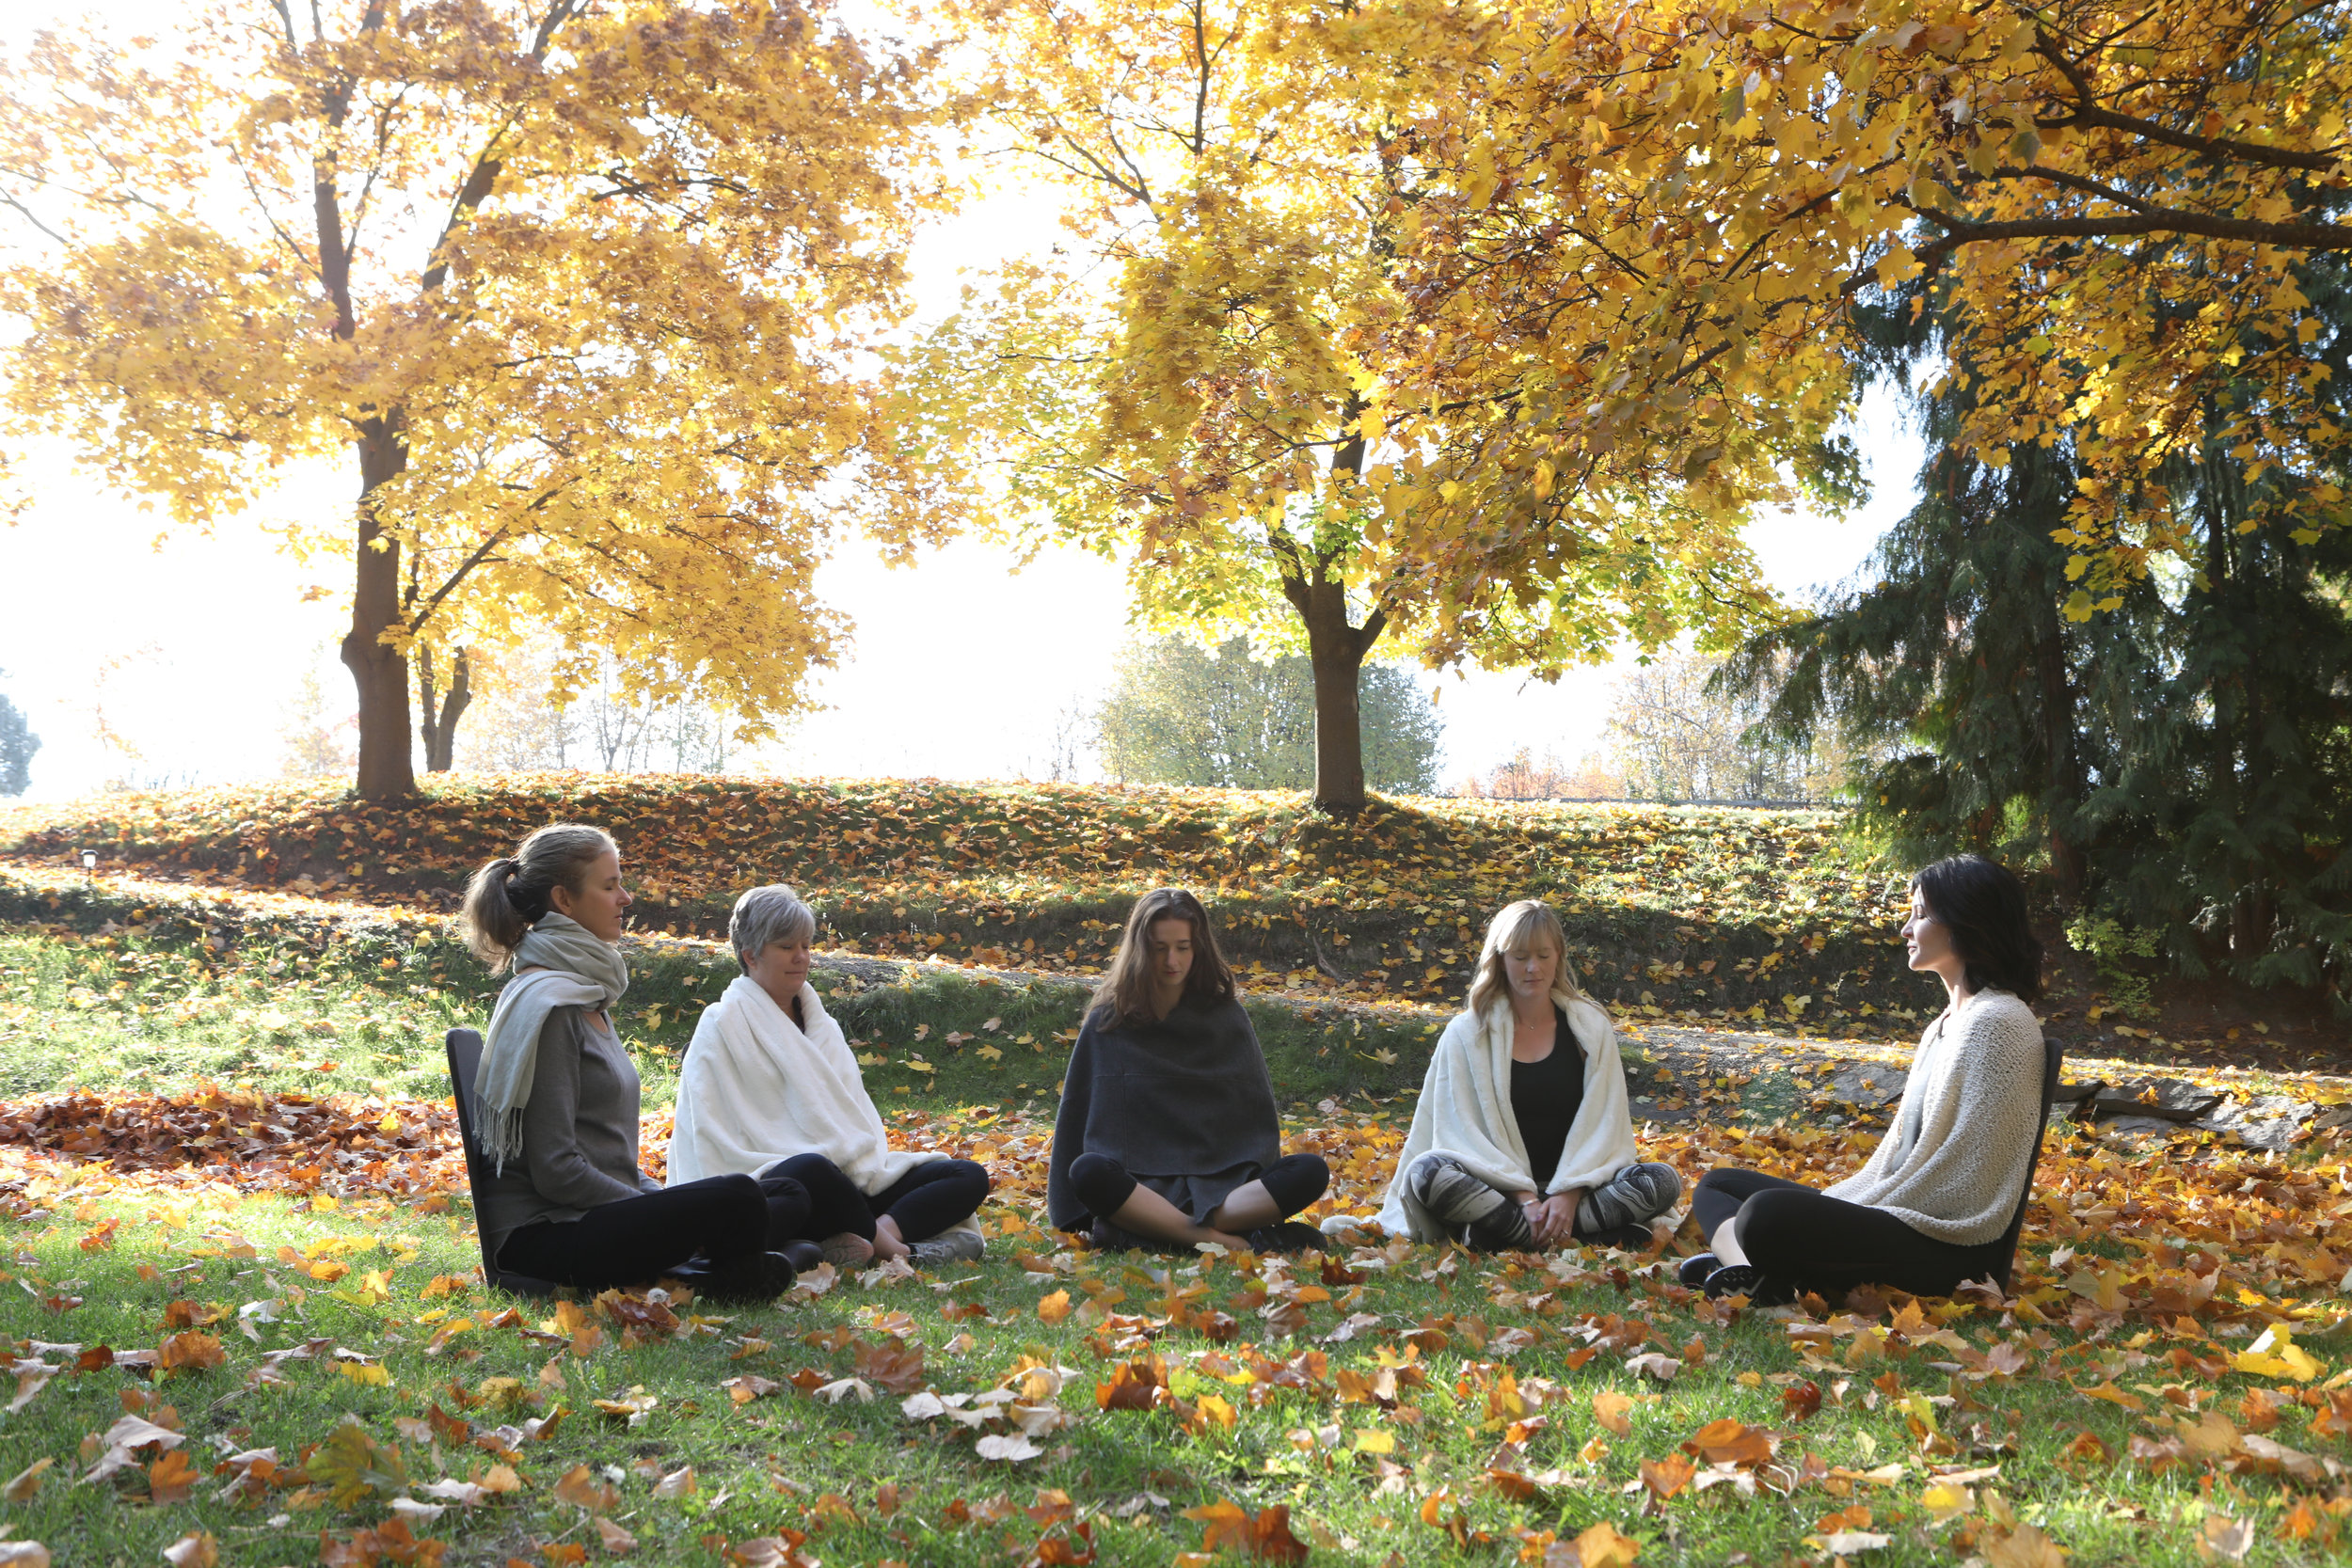 guided, group meditation - meditate